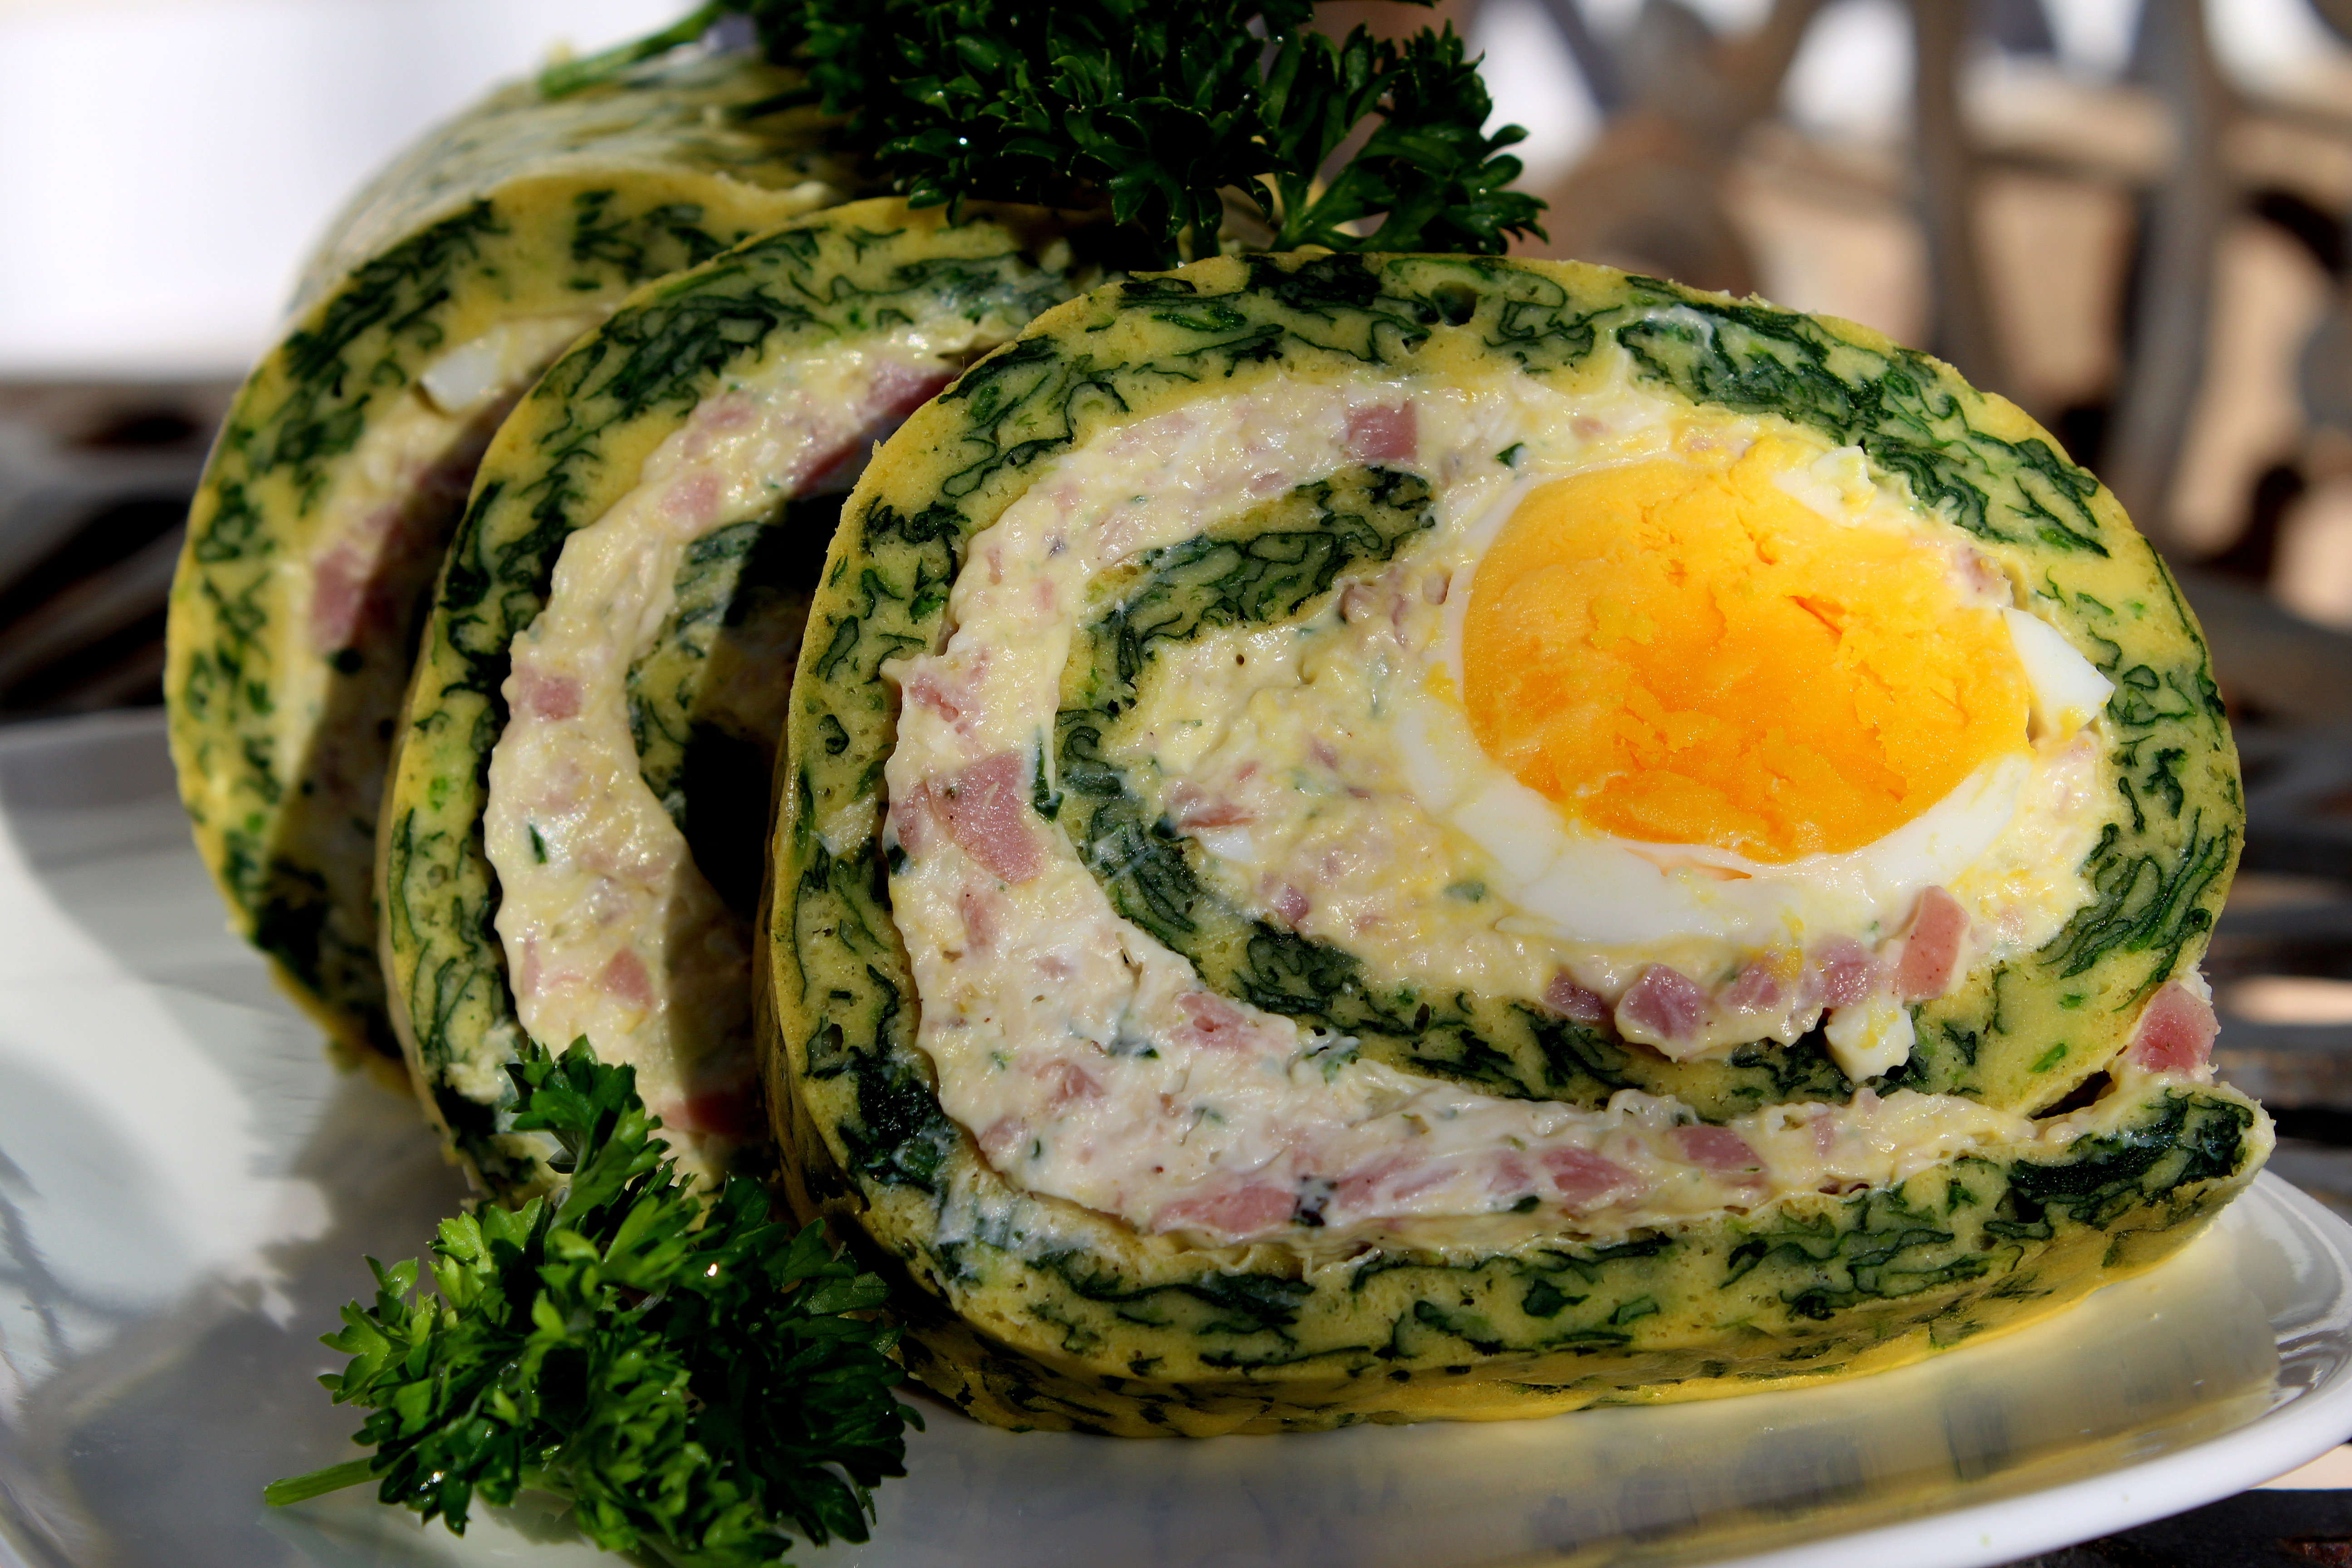 Rolat Od Mesa SA Jajima http://cookingwithzokie.com/2013/04/22/sareni-rolat-od-spanaca-spinach-roulade-with-cream-cheese-and-ham/